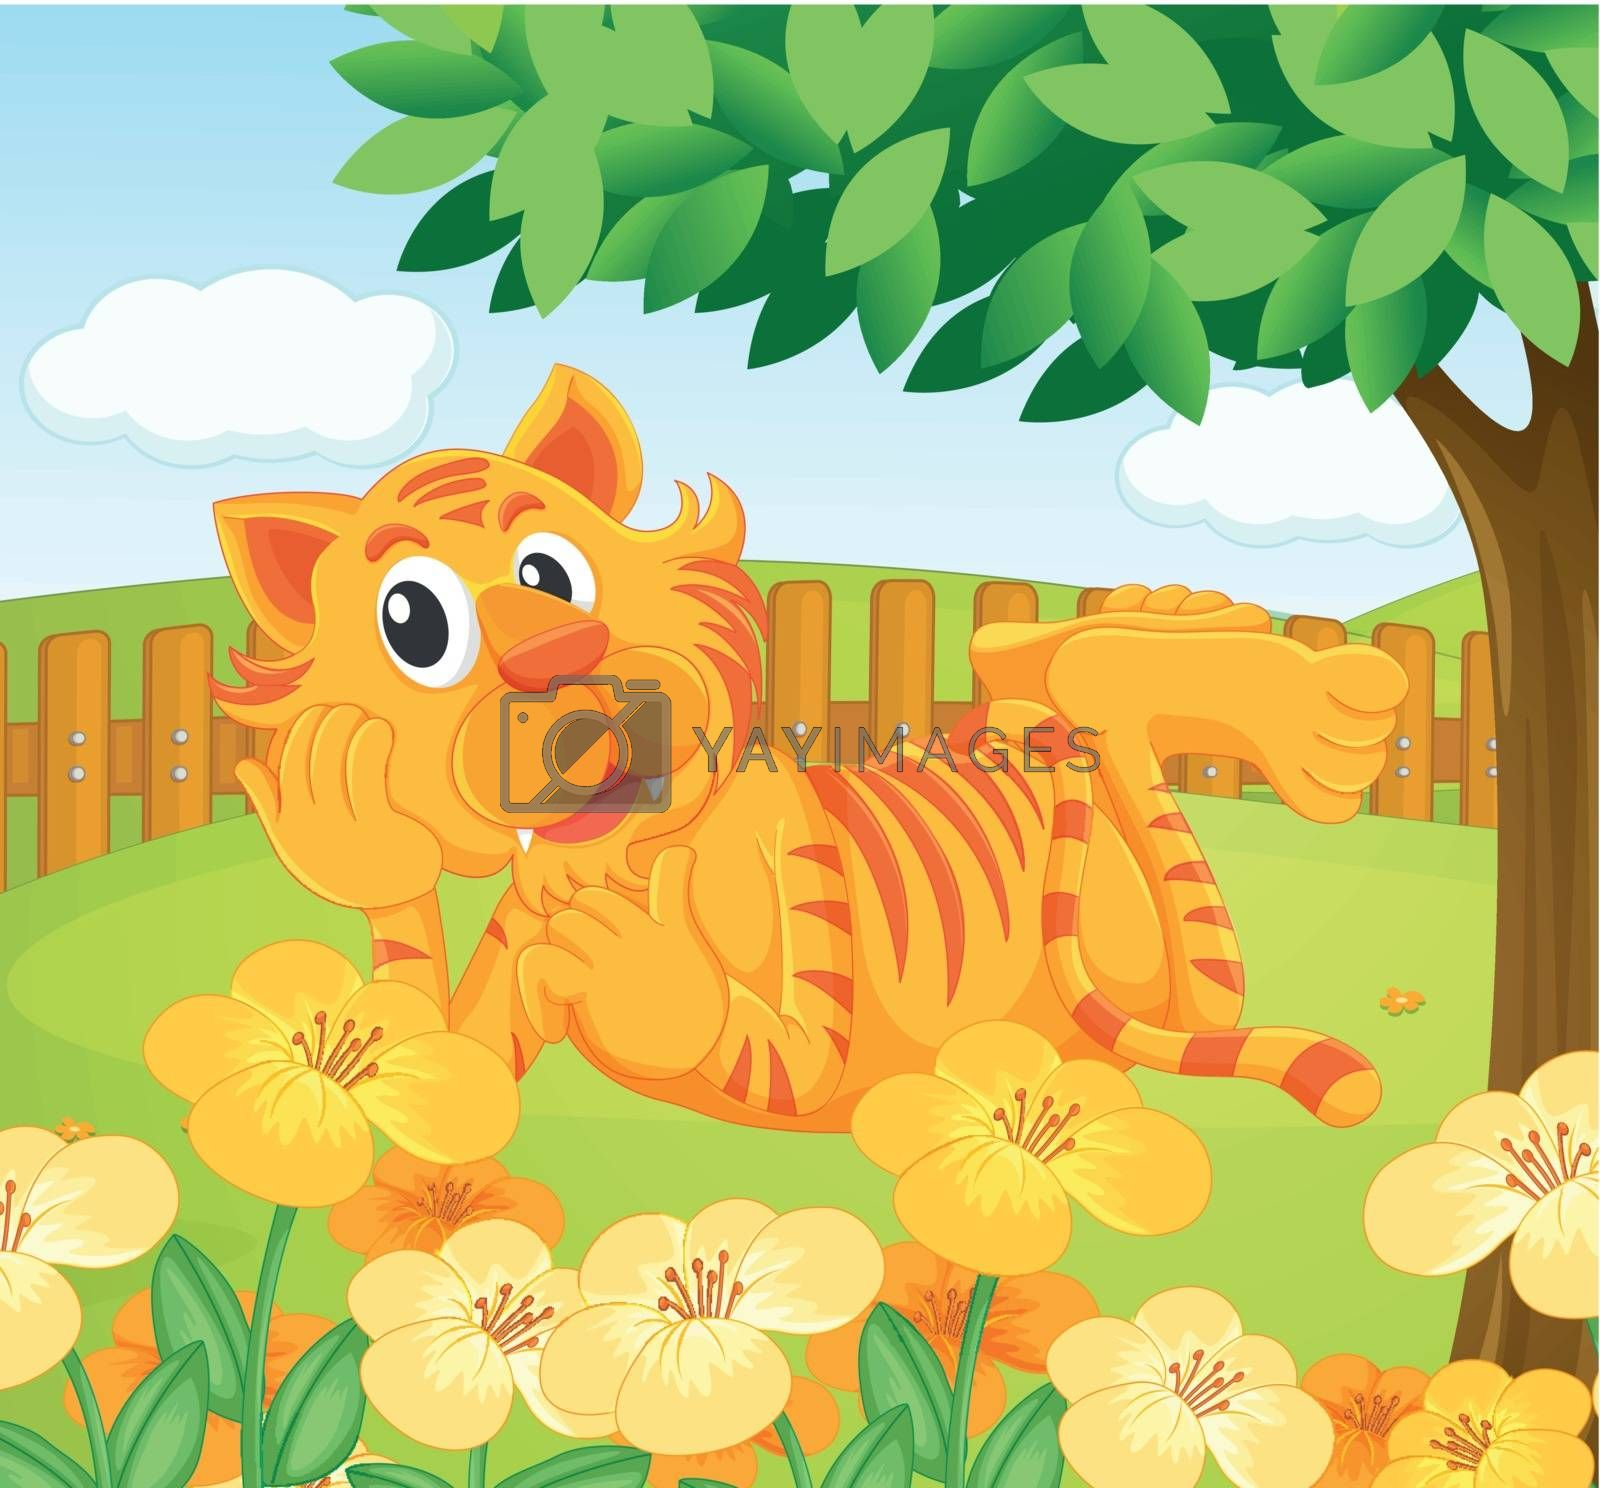 Illustration of a tiger in the fenced garden